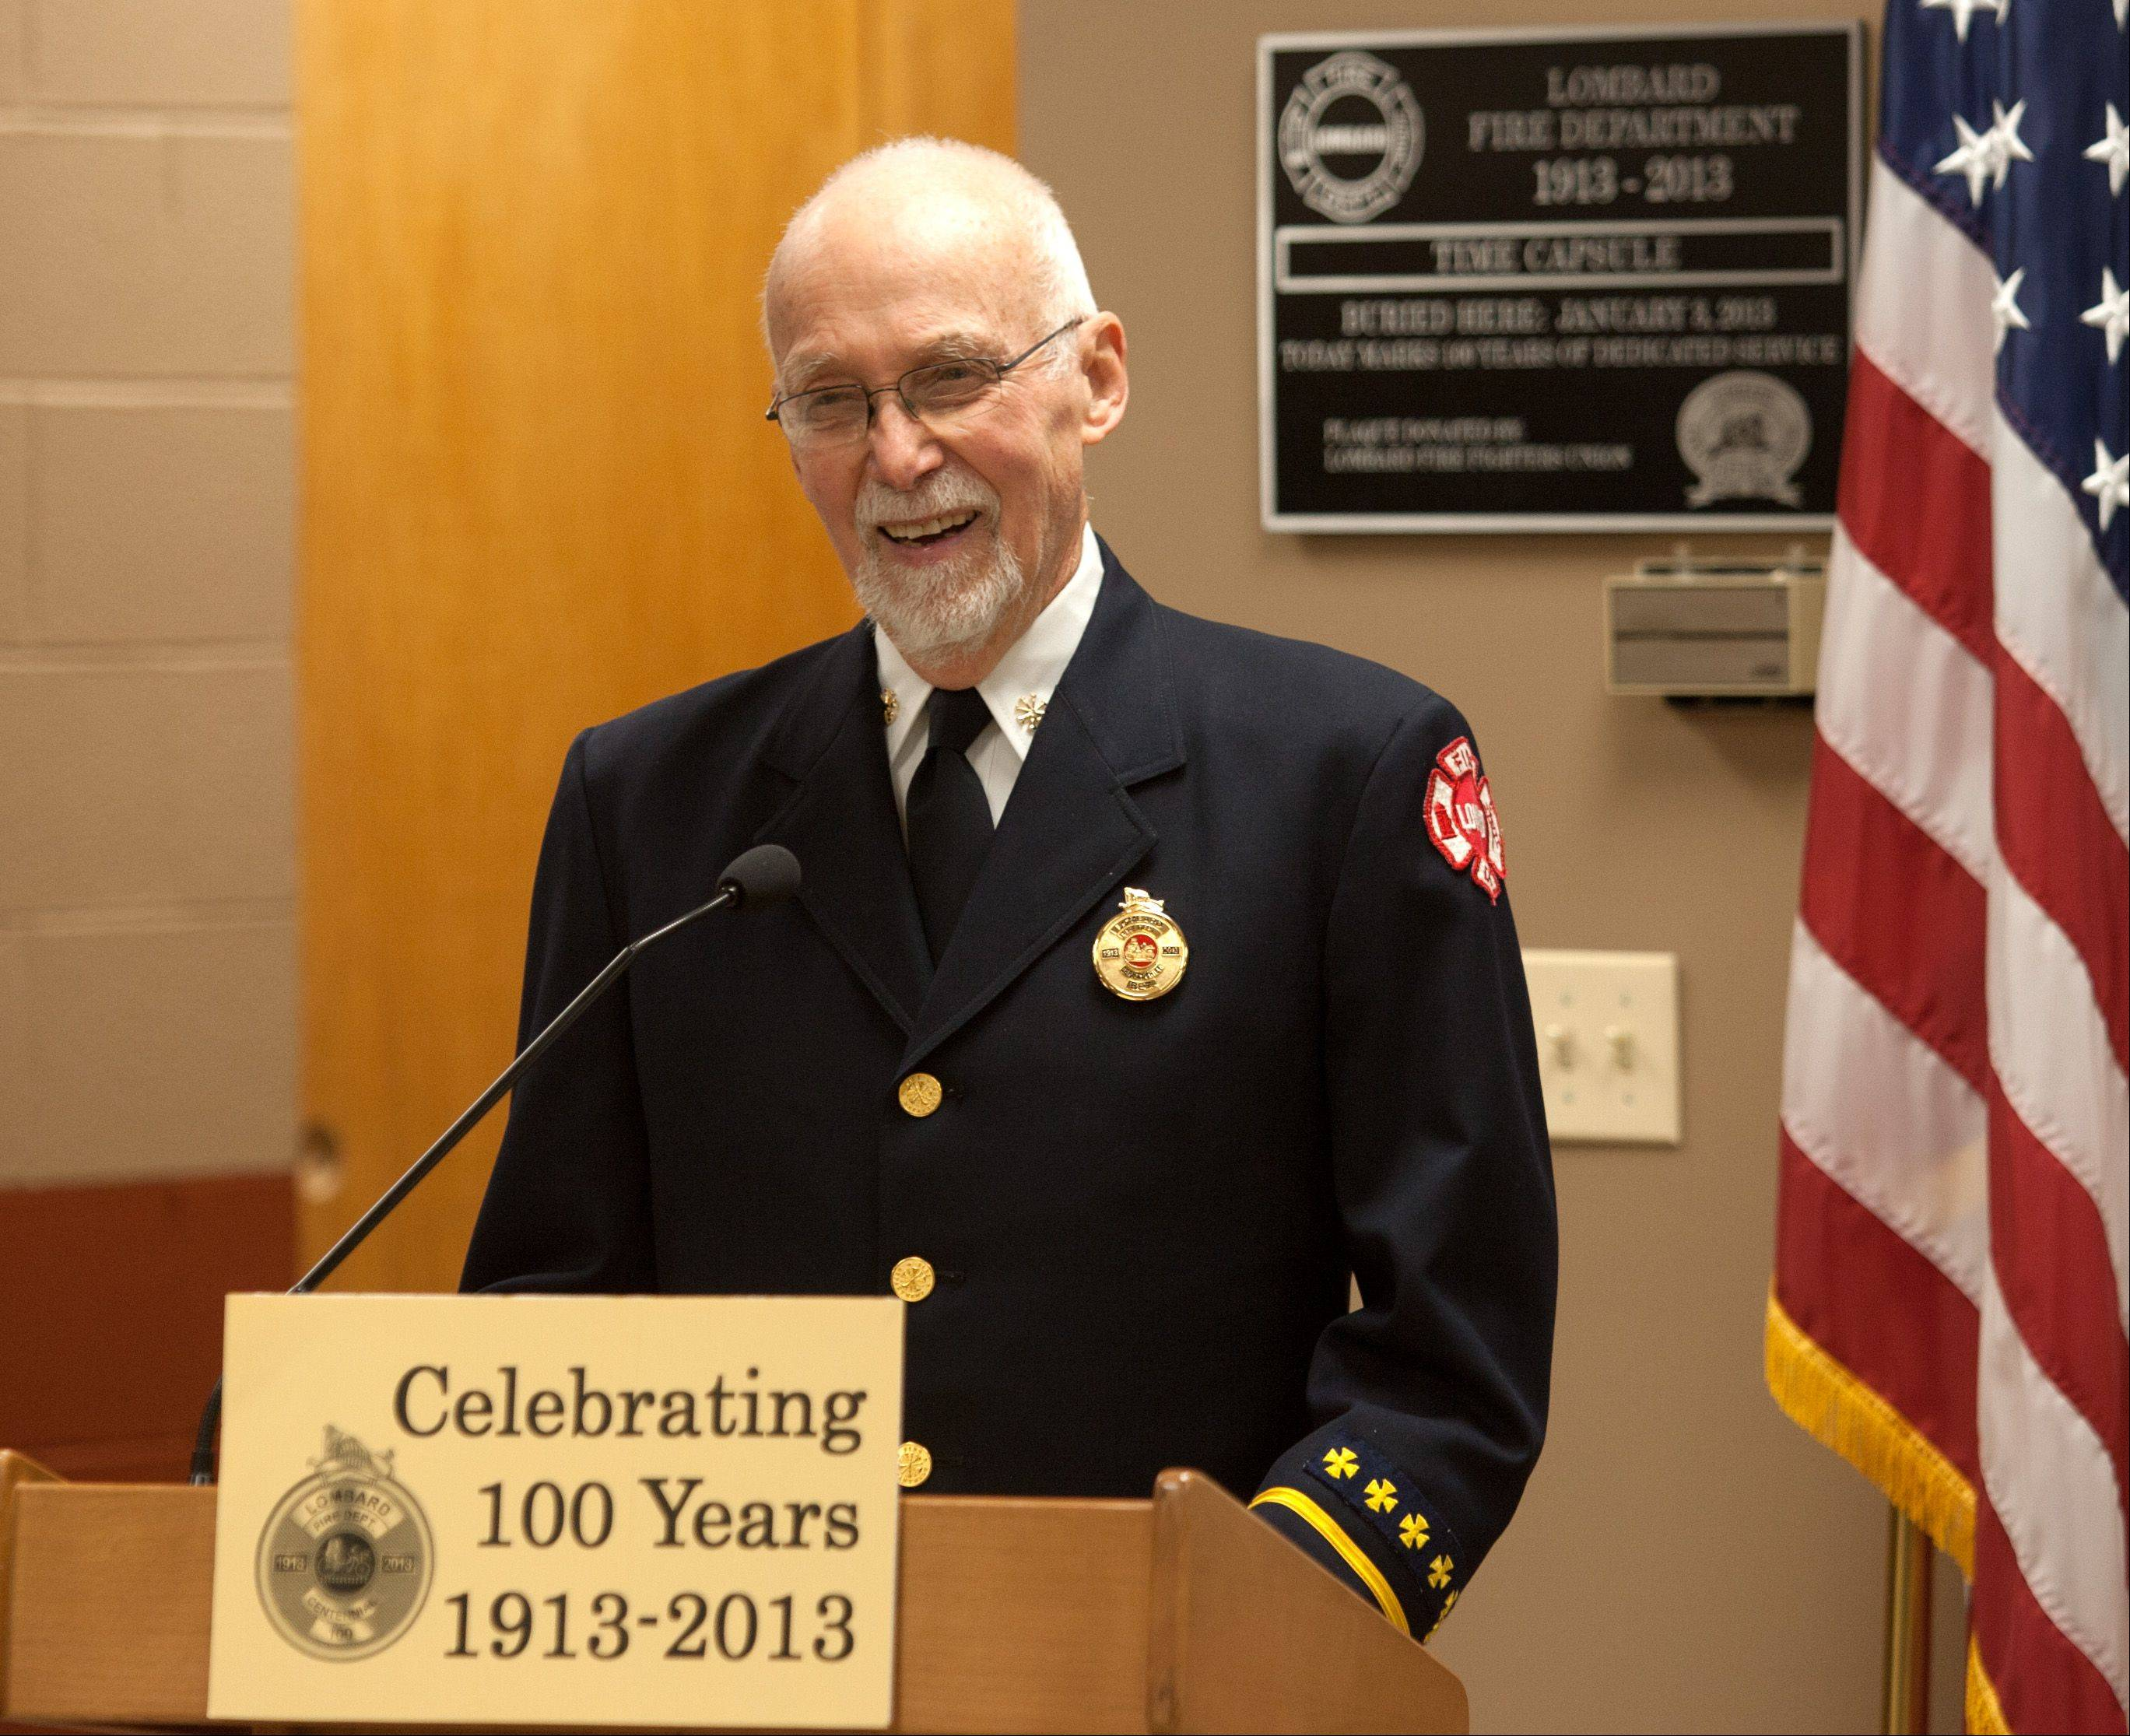 Former Lombard Fire Chief Jack Jones, who served from 1963-79, discusses the department's history during a ceremony honoring the Lombard Fire Department's 100th anniversary. The department held its first meeting Jan. 3, 1913.